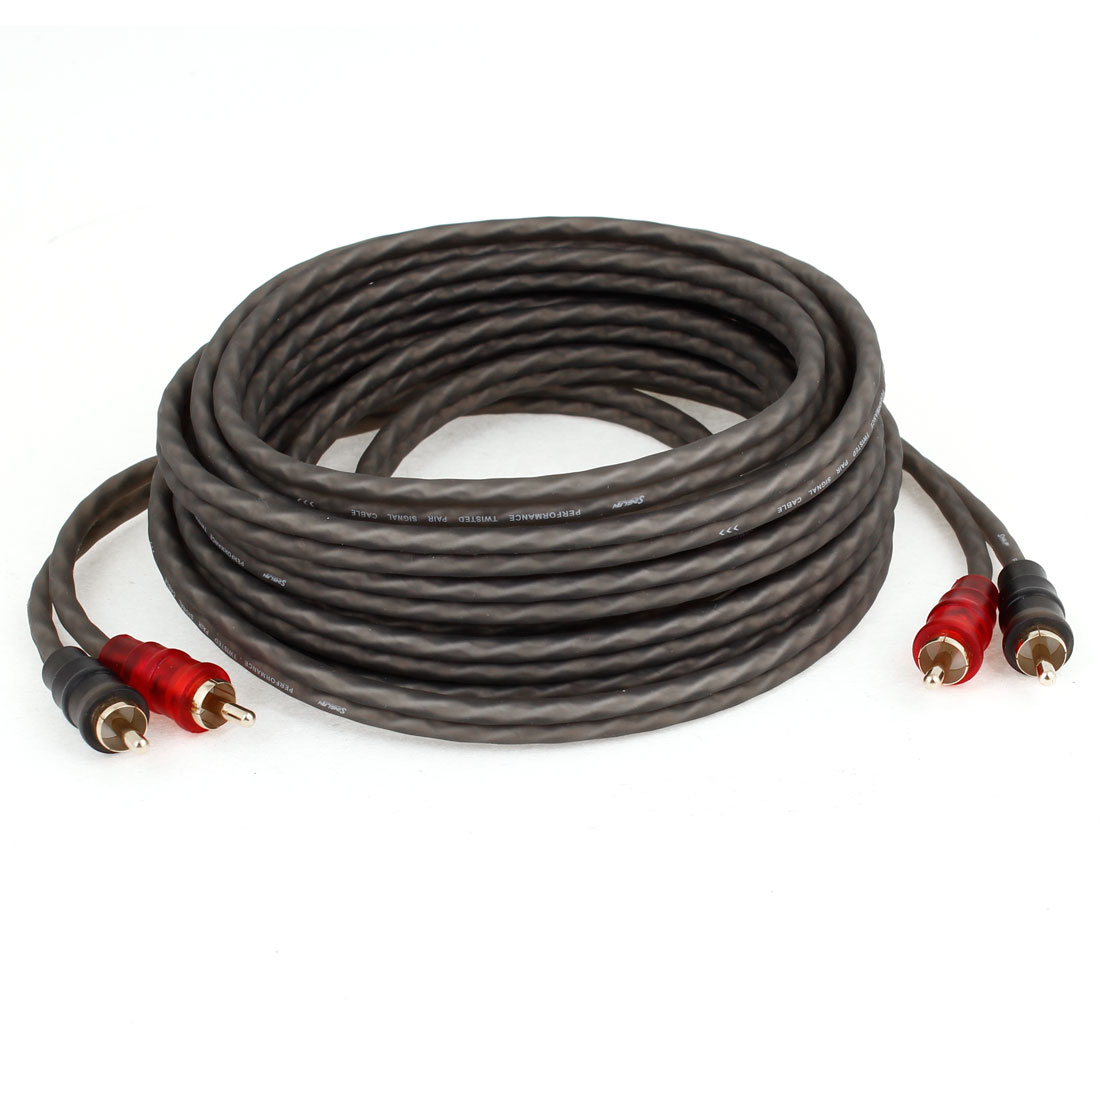 5 Meters Long Audio System 2 RCA to RCA Type Audio Cable for Car